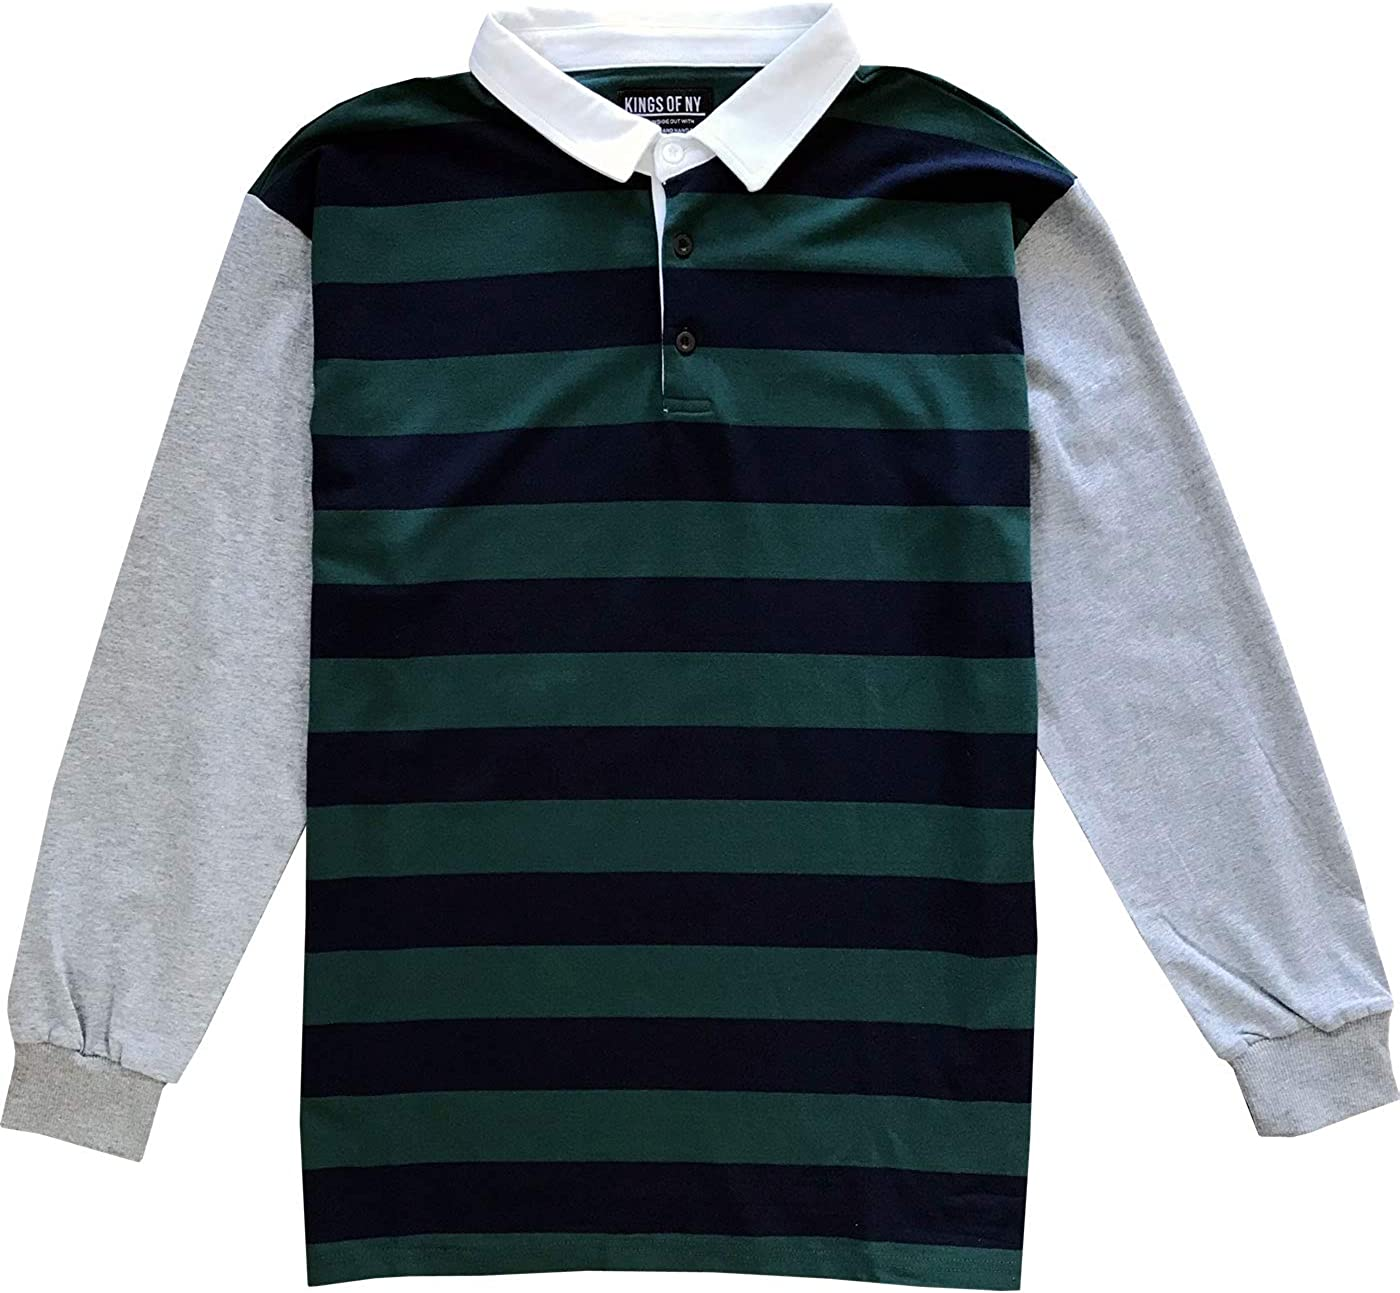 Kings Of NY Striped Color Block Mens Long Sleeve Polo Rugby Shirt